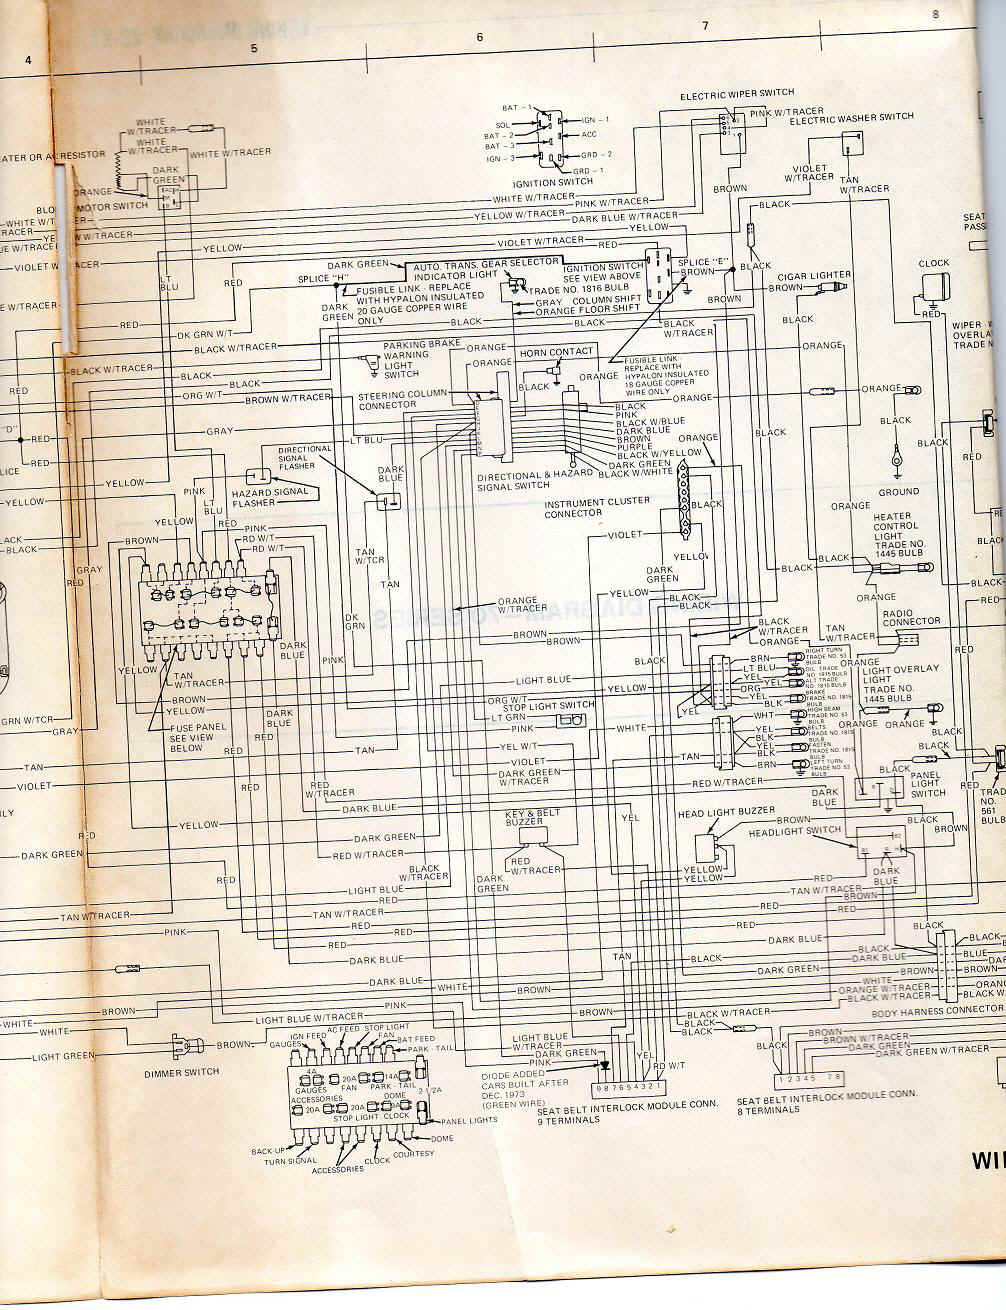 amc javelin tach wiring diagrams wiring diagram 1971 Javelin amc javelin tach wiring diagrams detailed wiring diagram1968 amc javelin tachometer wiring diagram auto electrical wiring